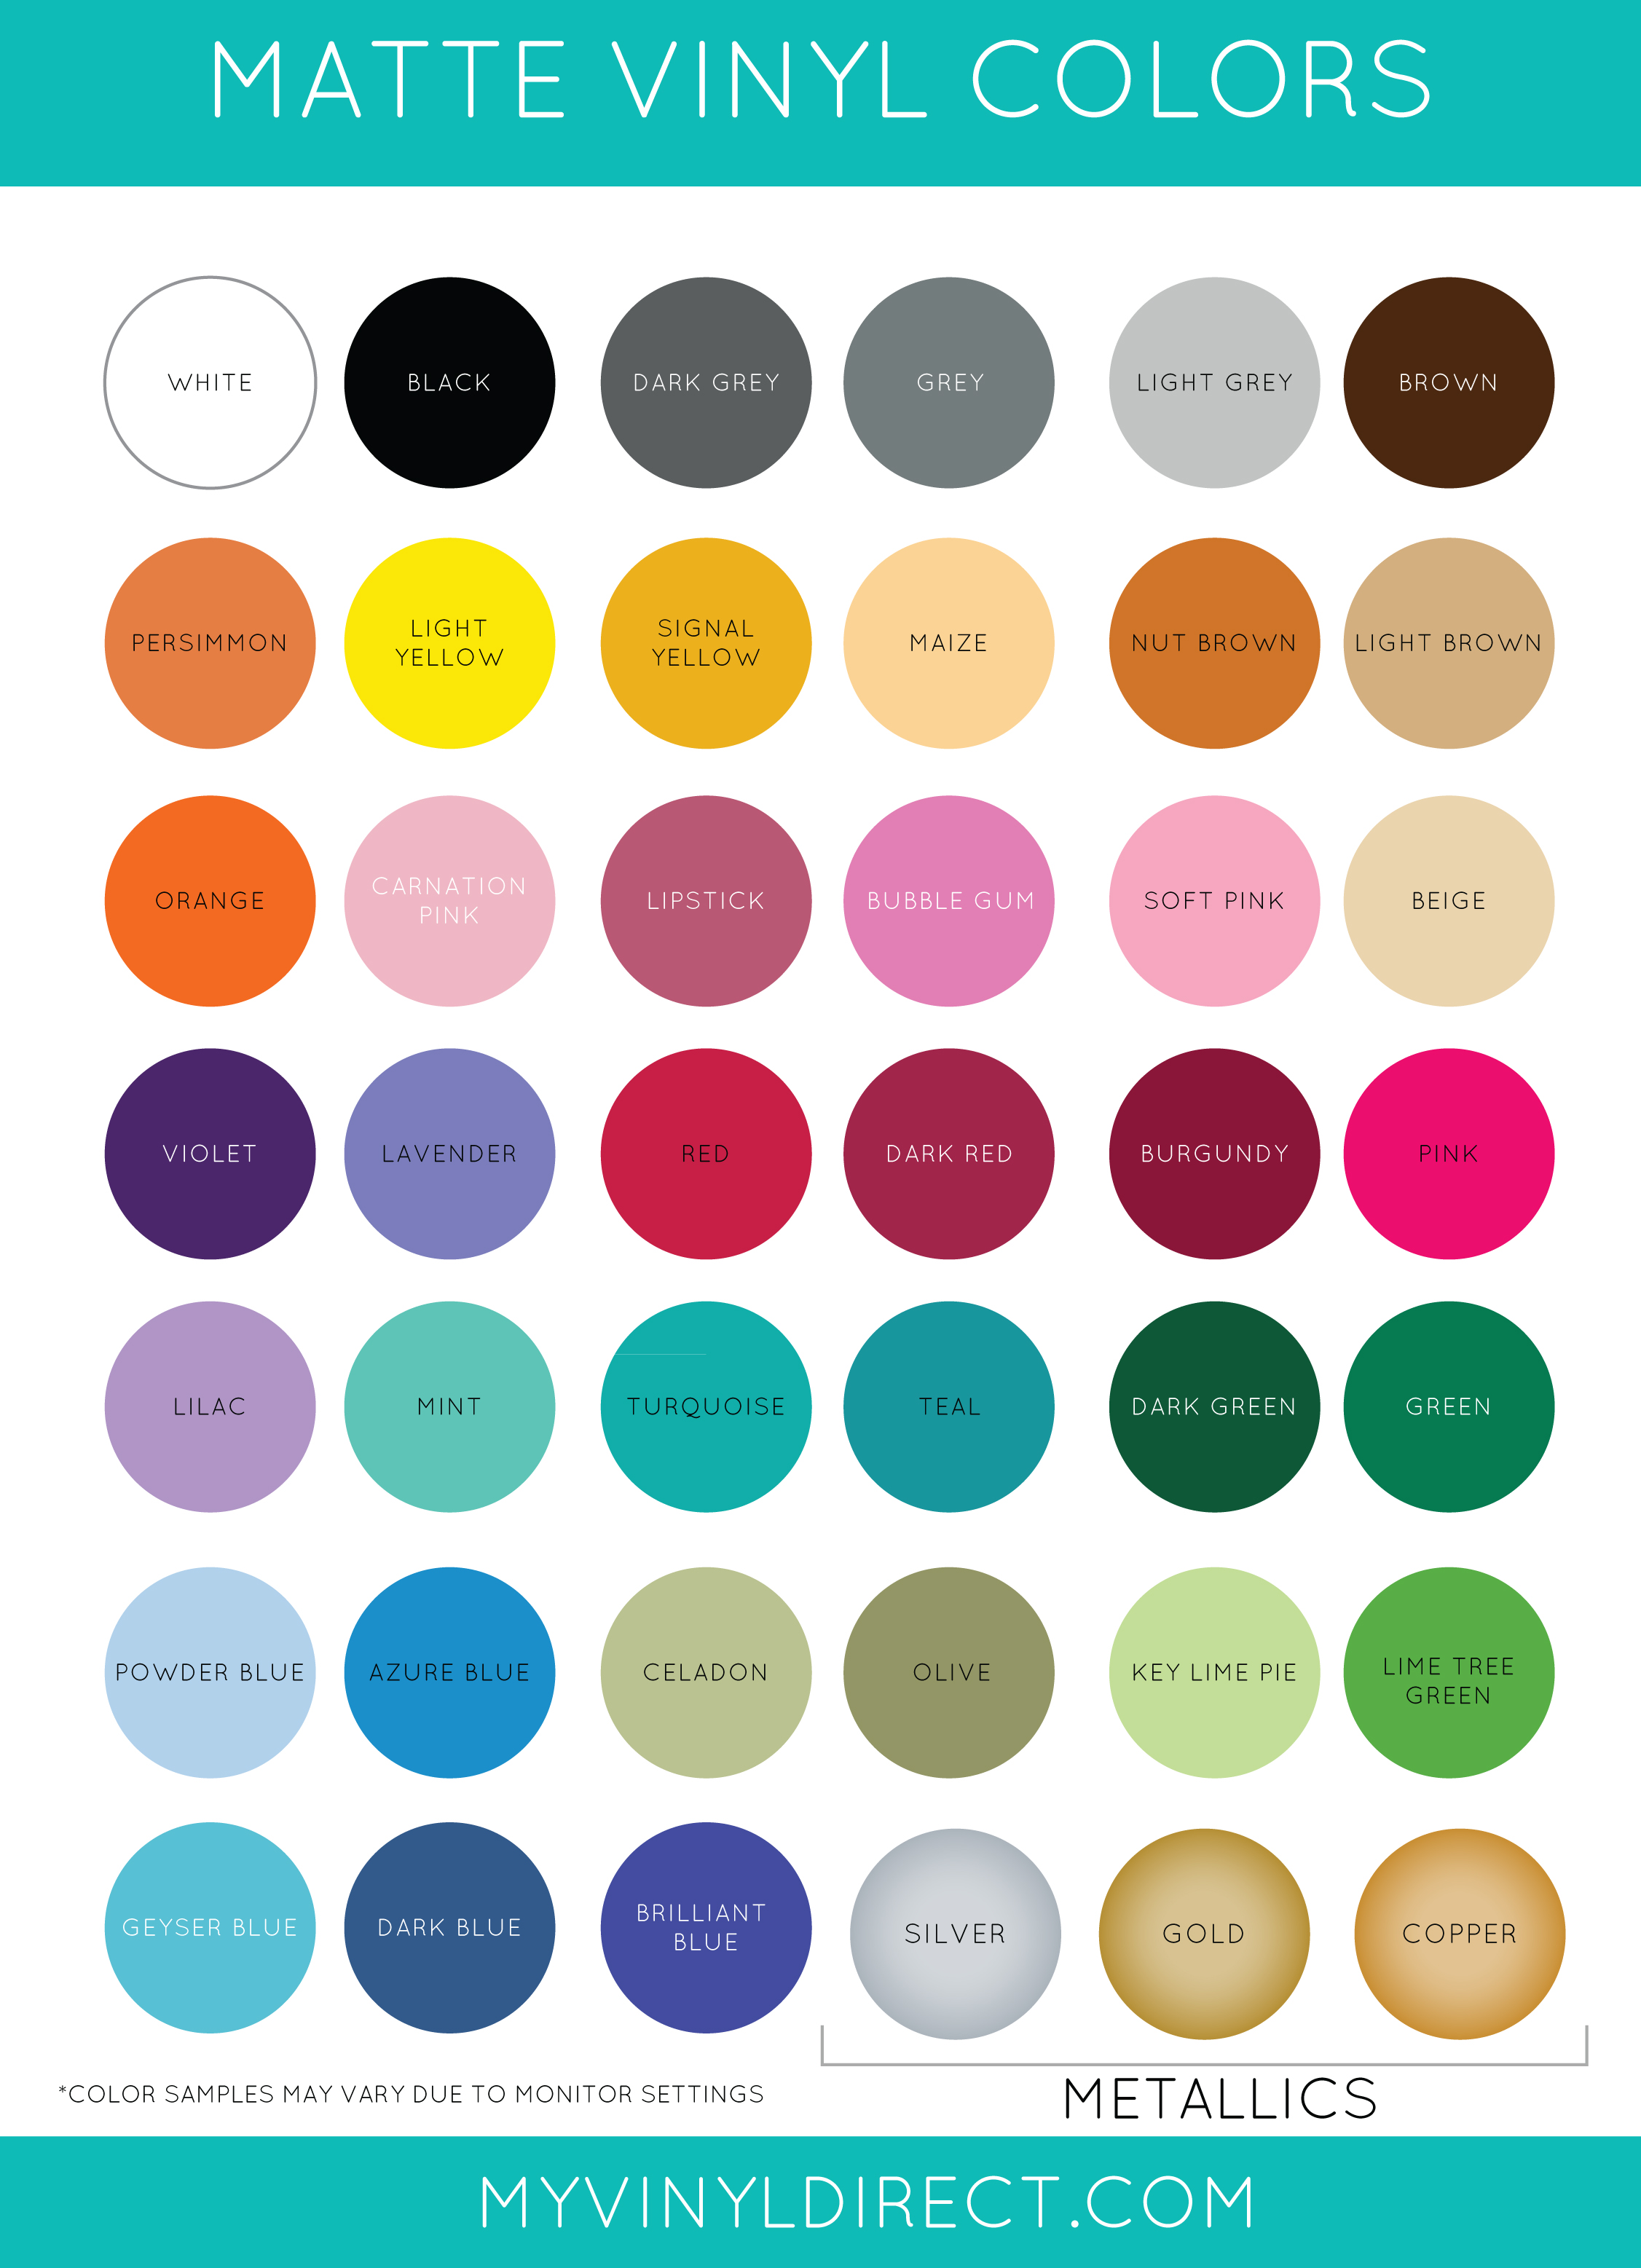 matte-color-chart-myvinyldirect-2015.jpg